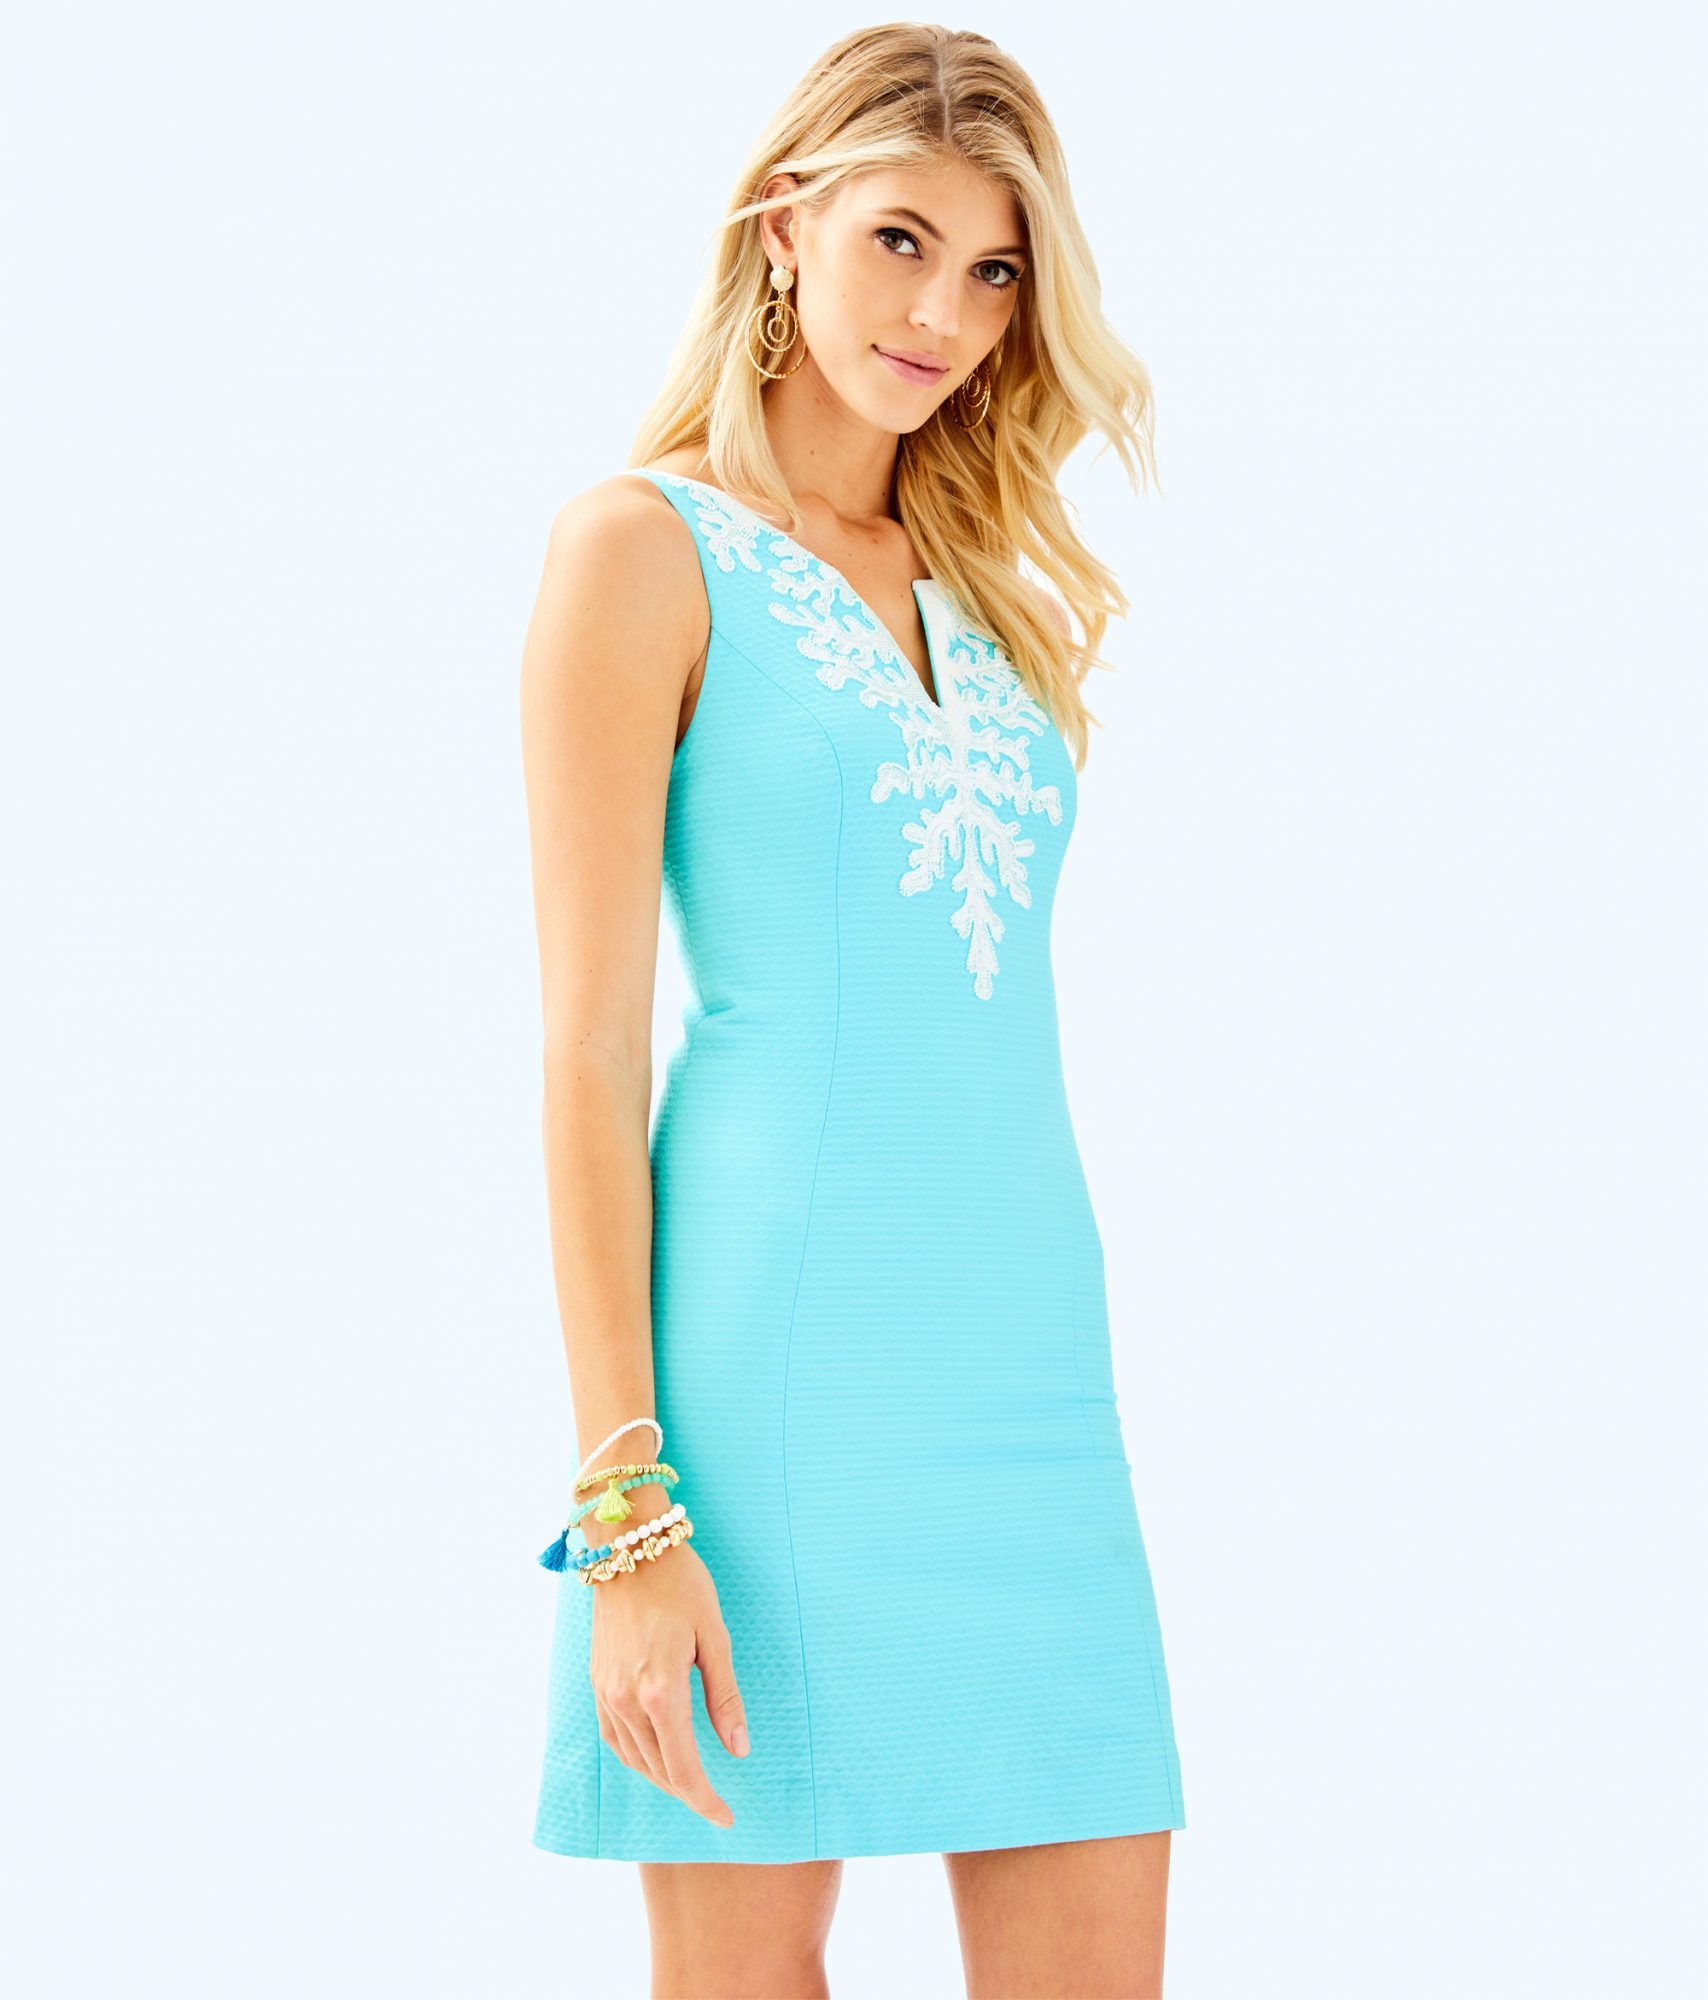 lilly pulitzer after party sale turquoise mini dress